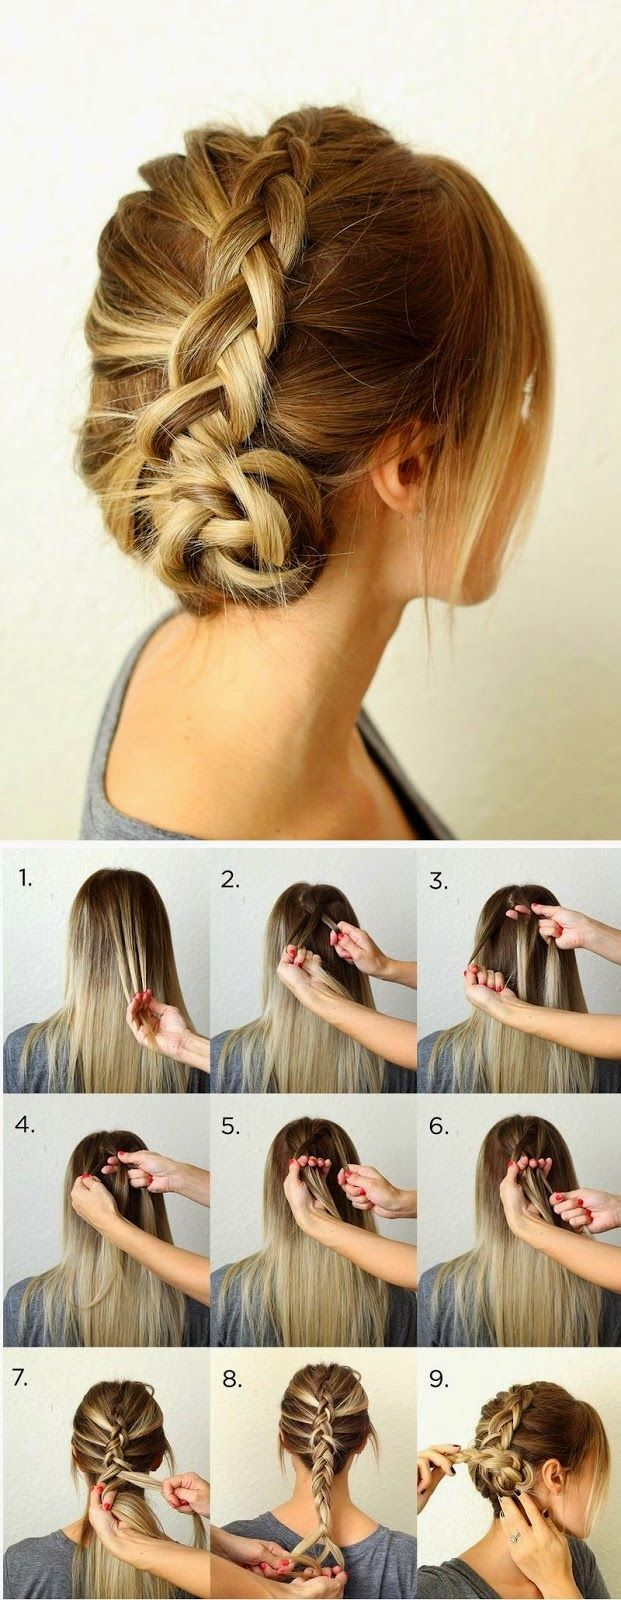 Simple Dutch Braid